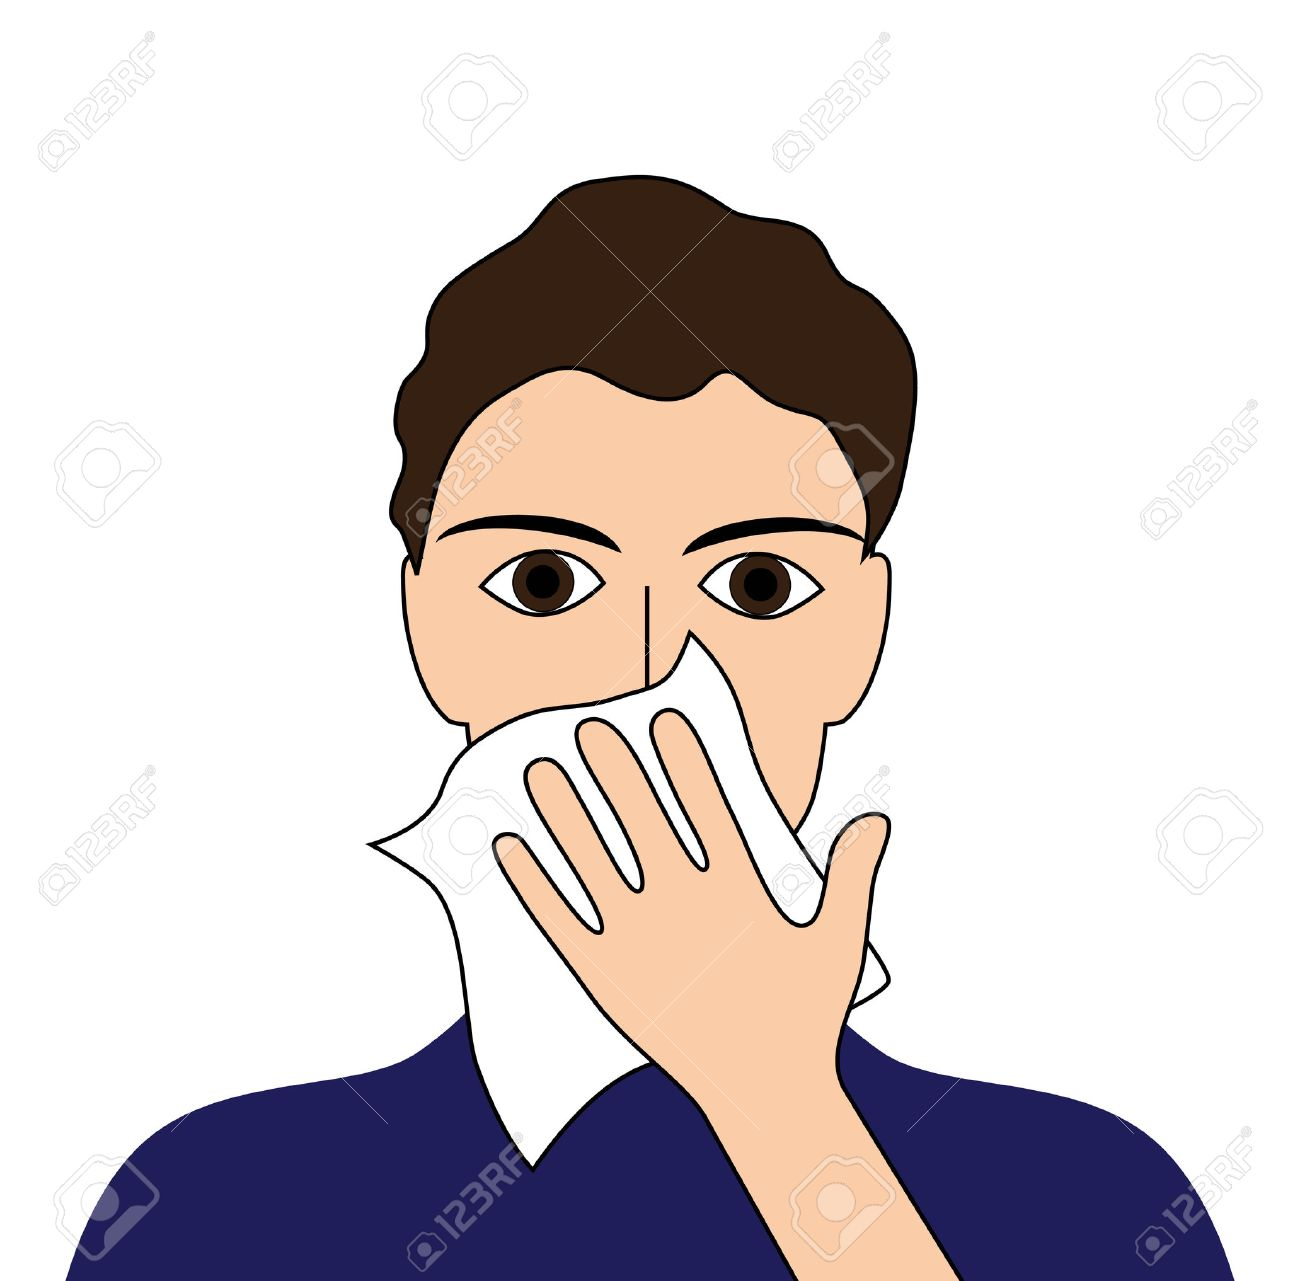 Cover your cough sick ill fever flu cold sneeze vomit disease people pictogram Stock Vector - 25749357